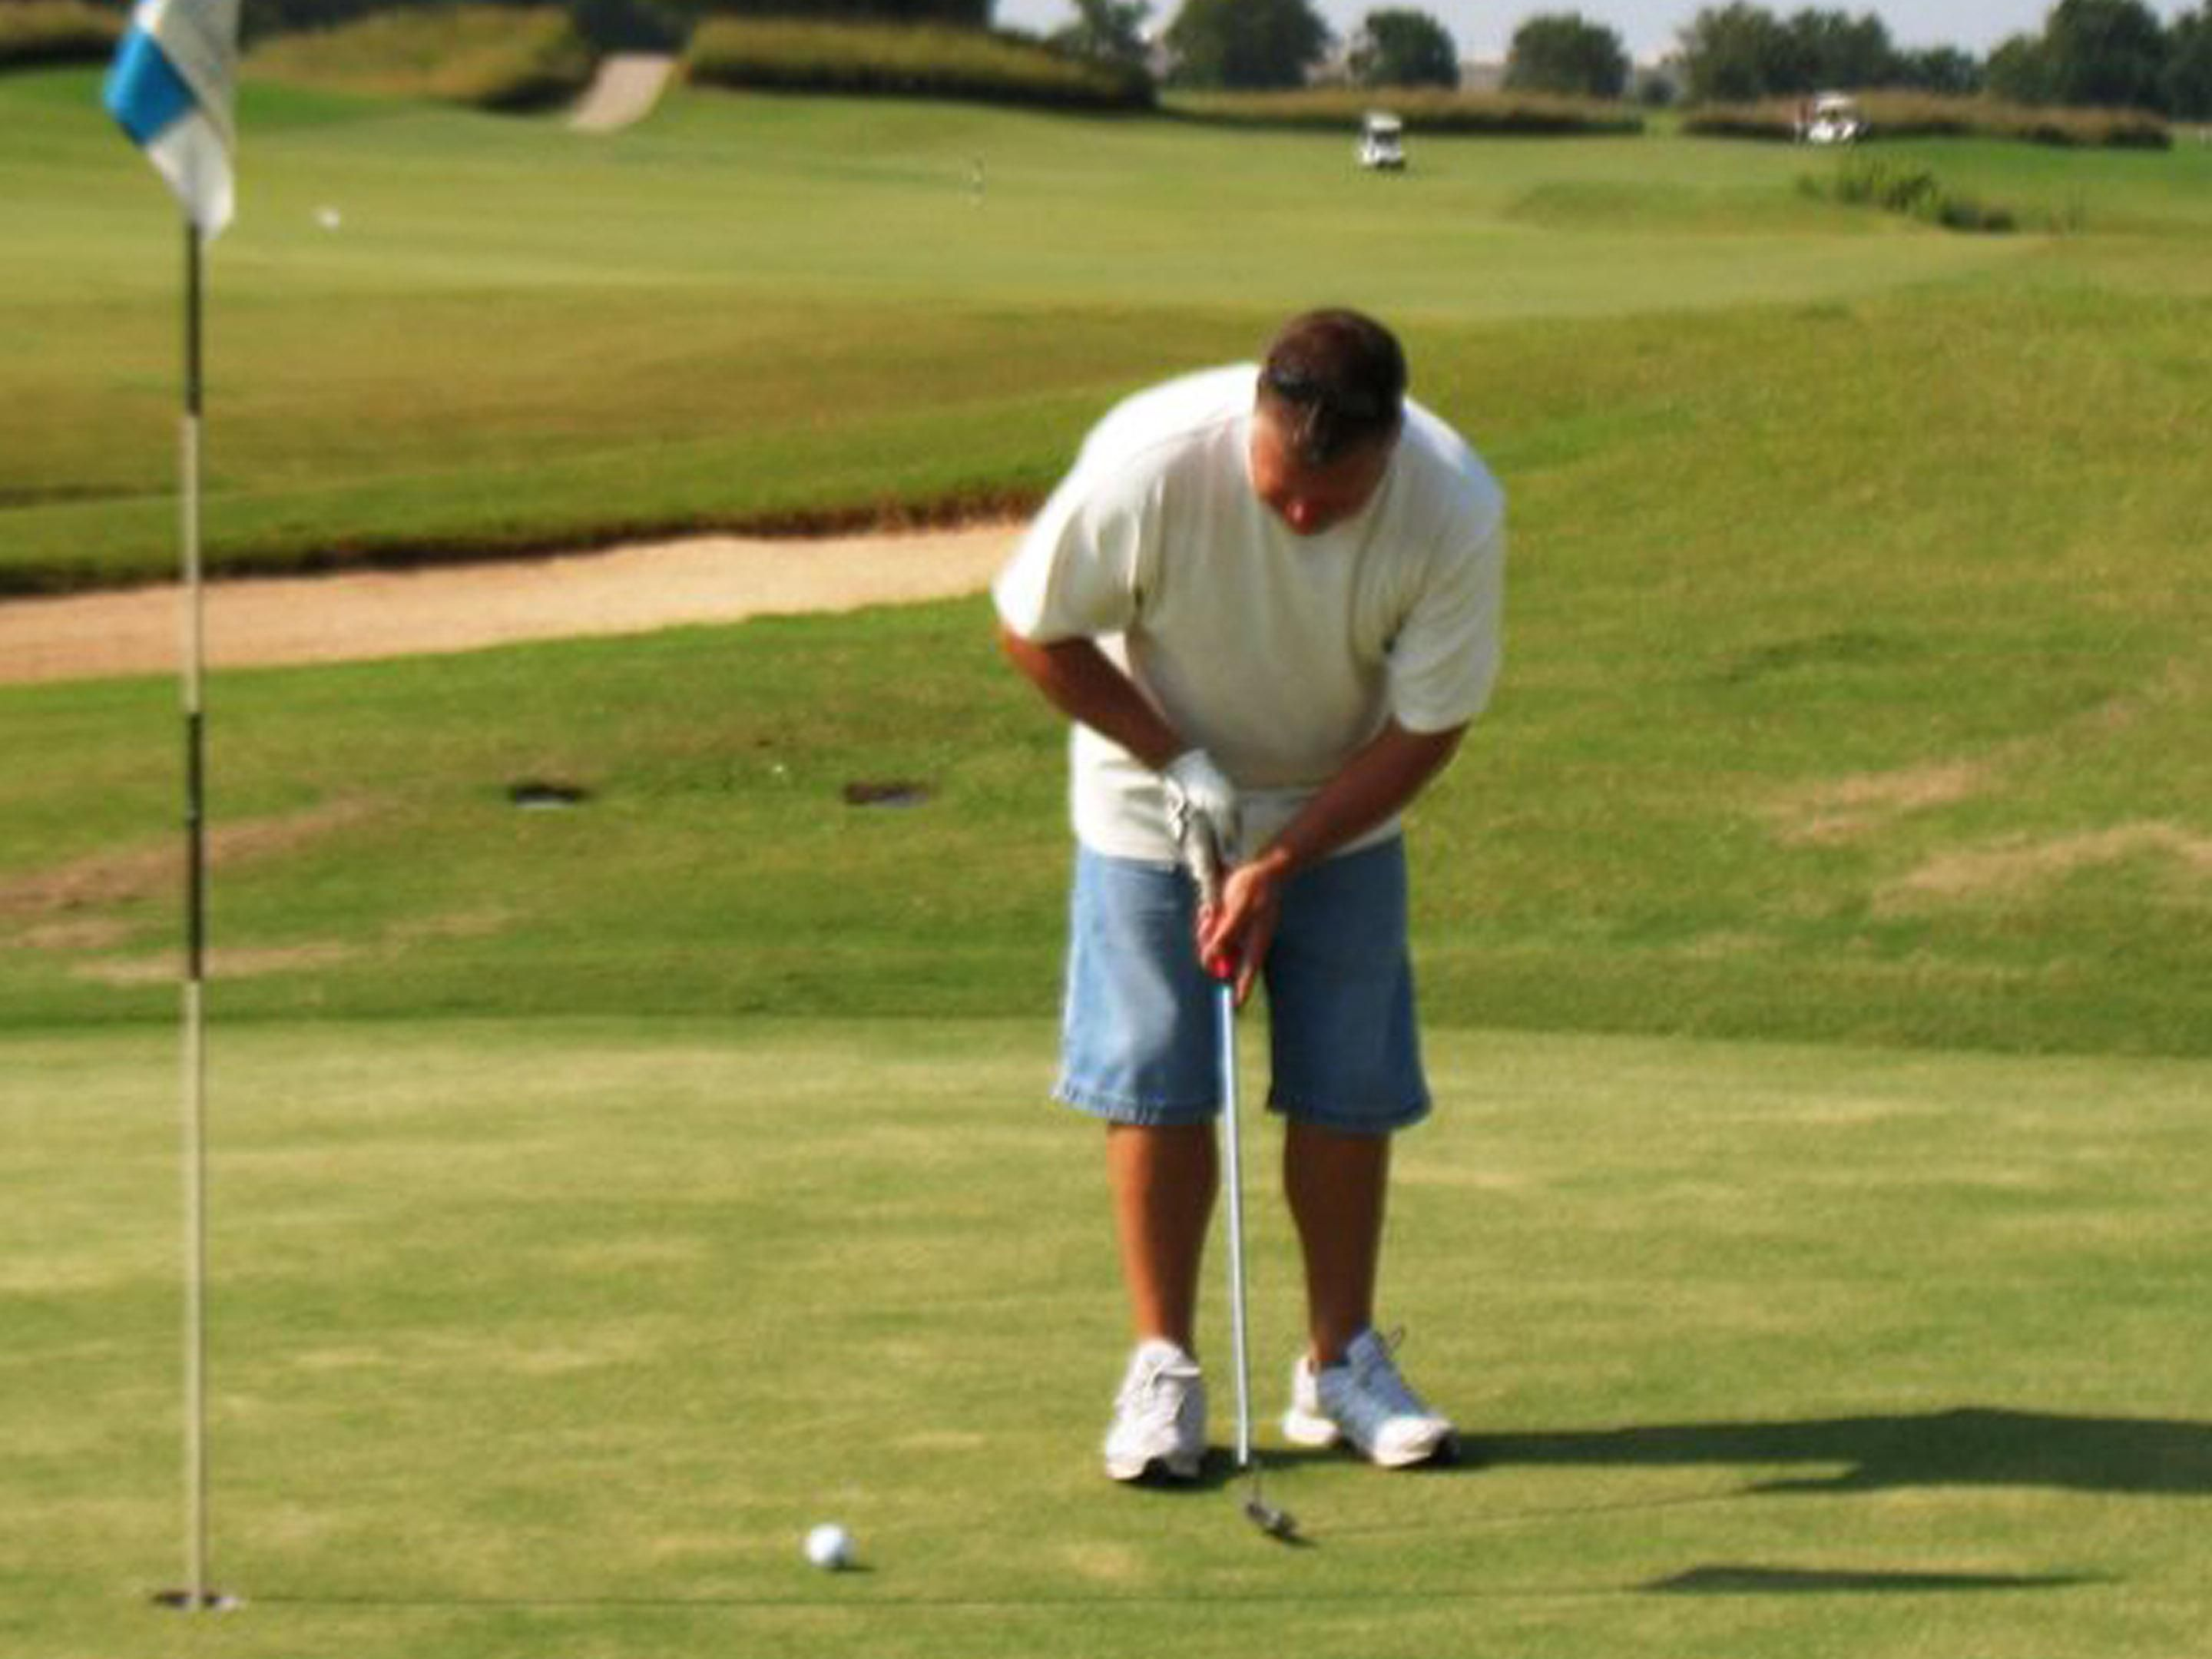 Enjoy A Day Of Golf On One Of The Cities 7 Golf Courses